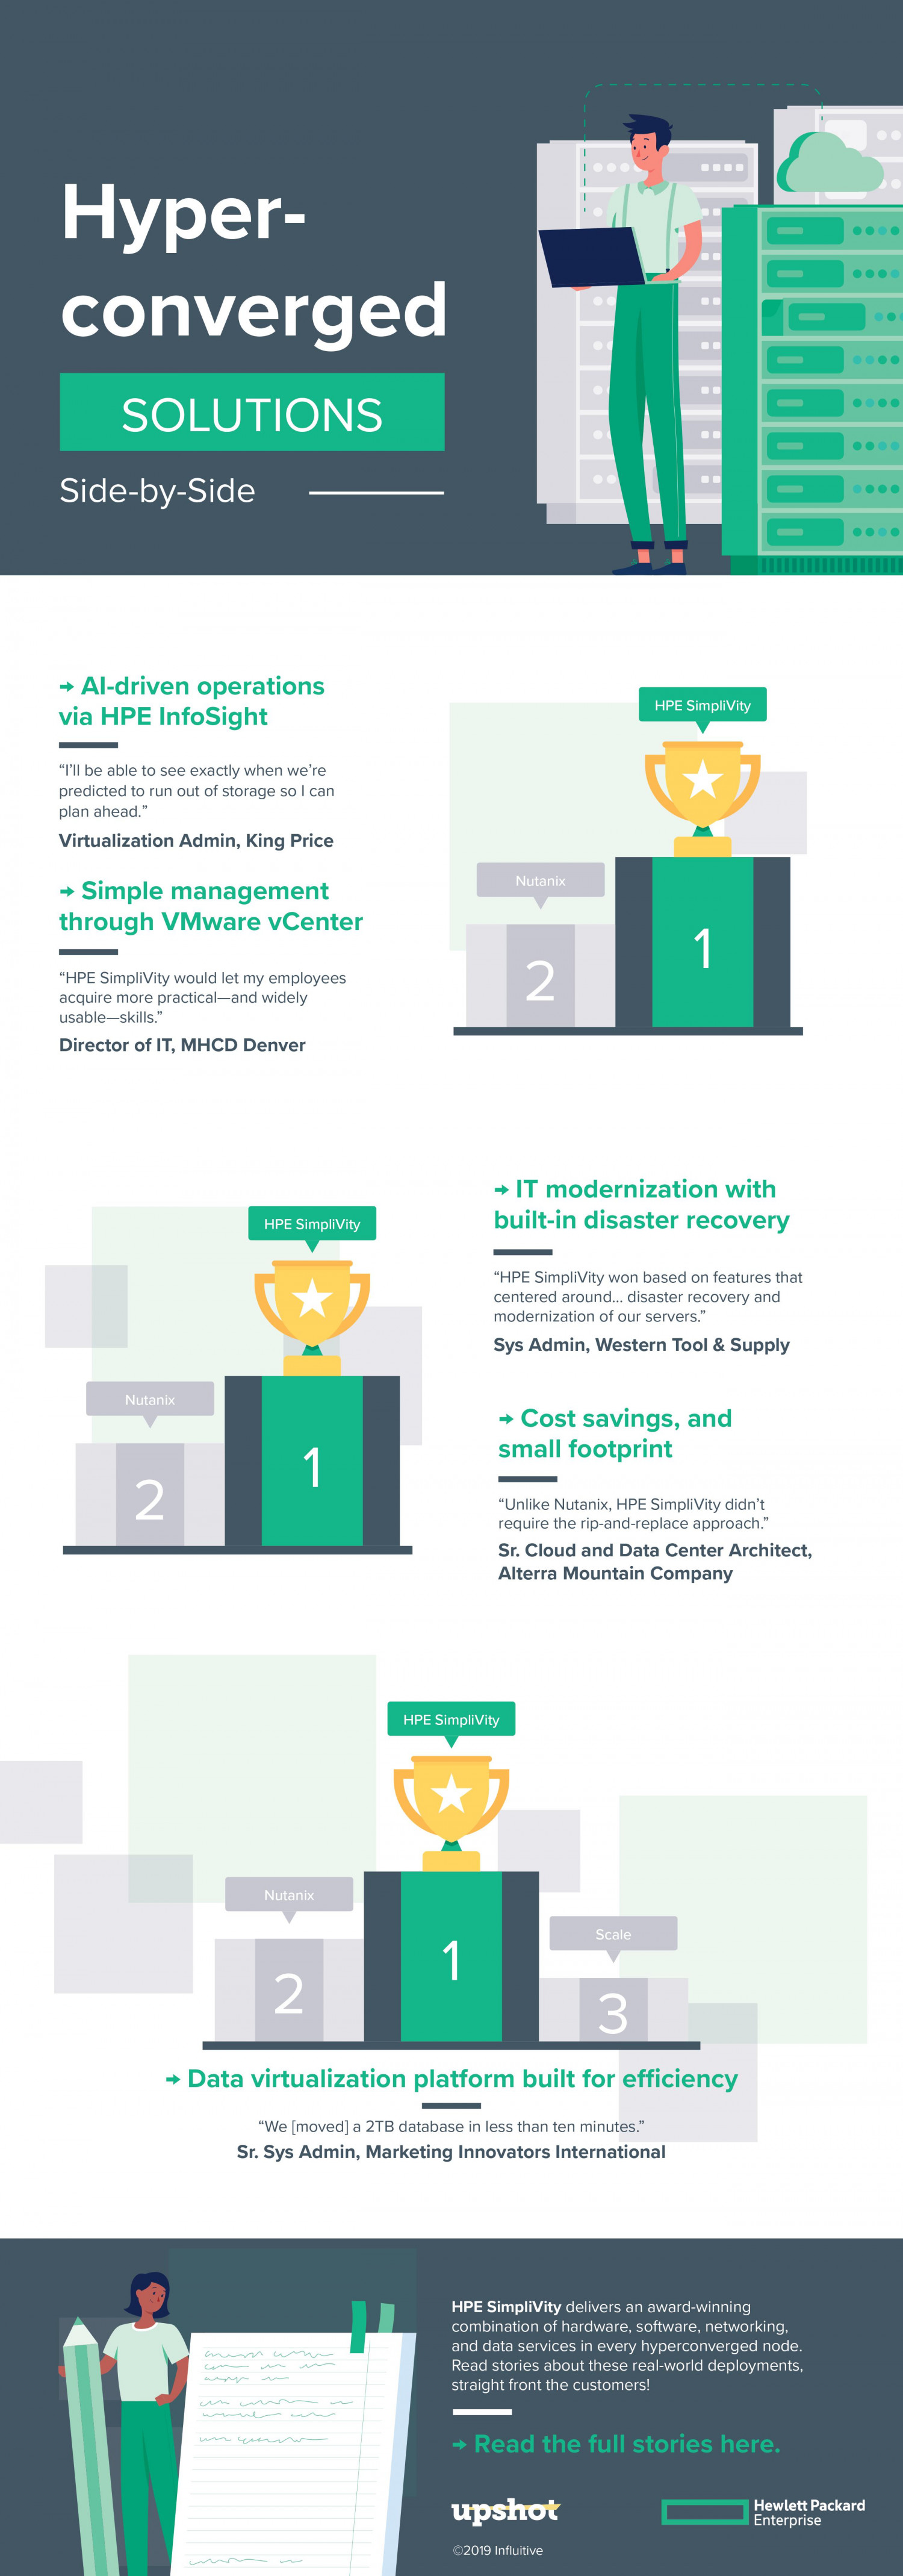 Compare Hyperconverged Solutions Infographic